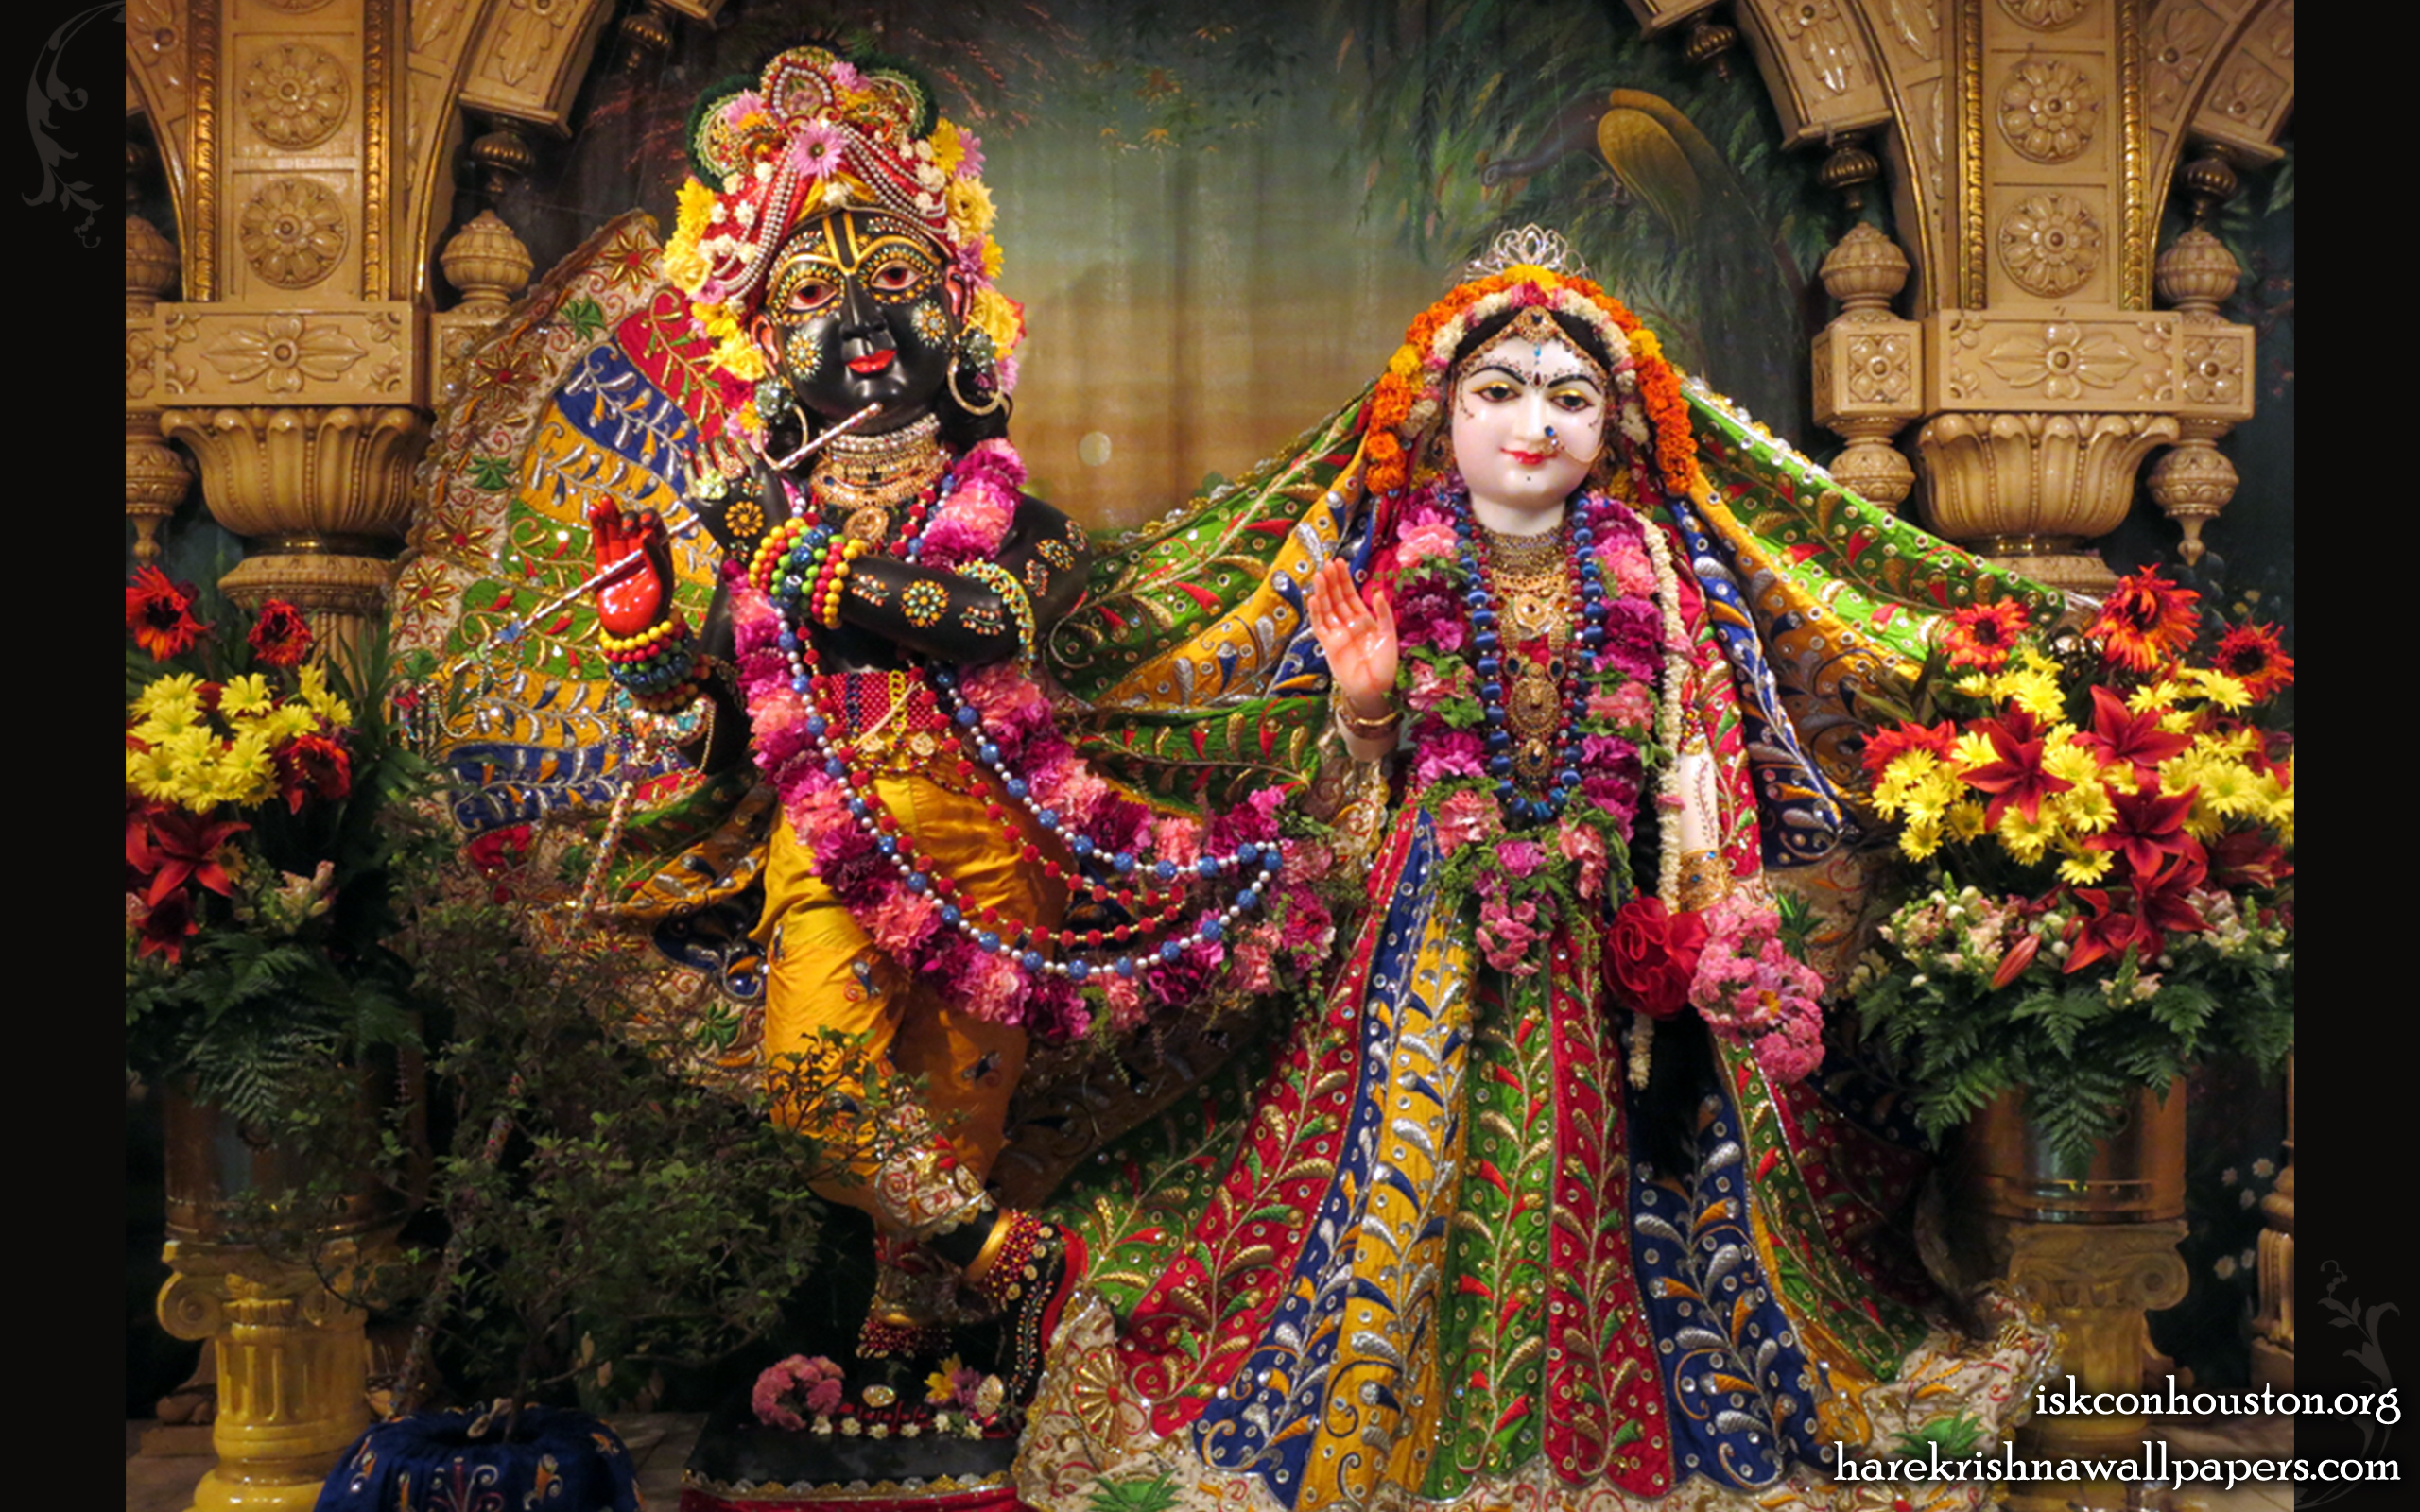 Sri Sri Radha Nilamadhava Wallpaper (010) Size 2560x1600 Download